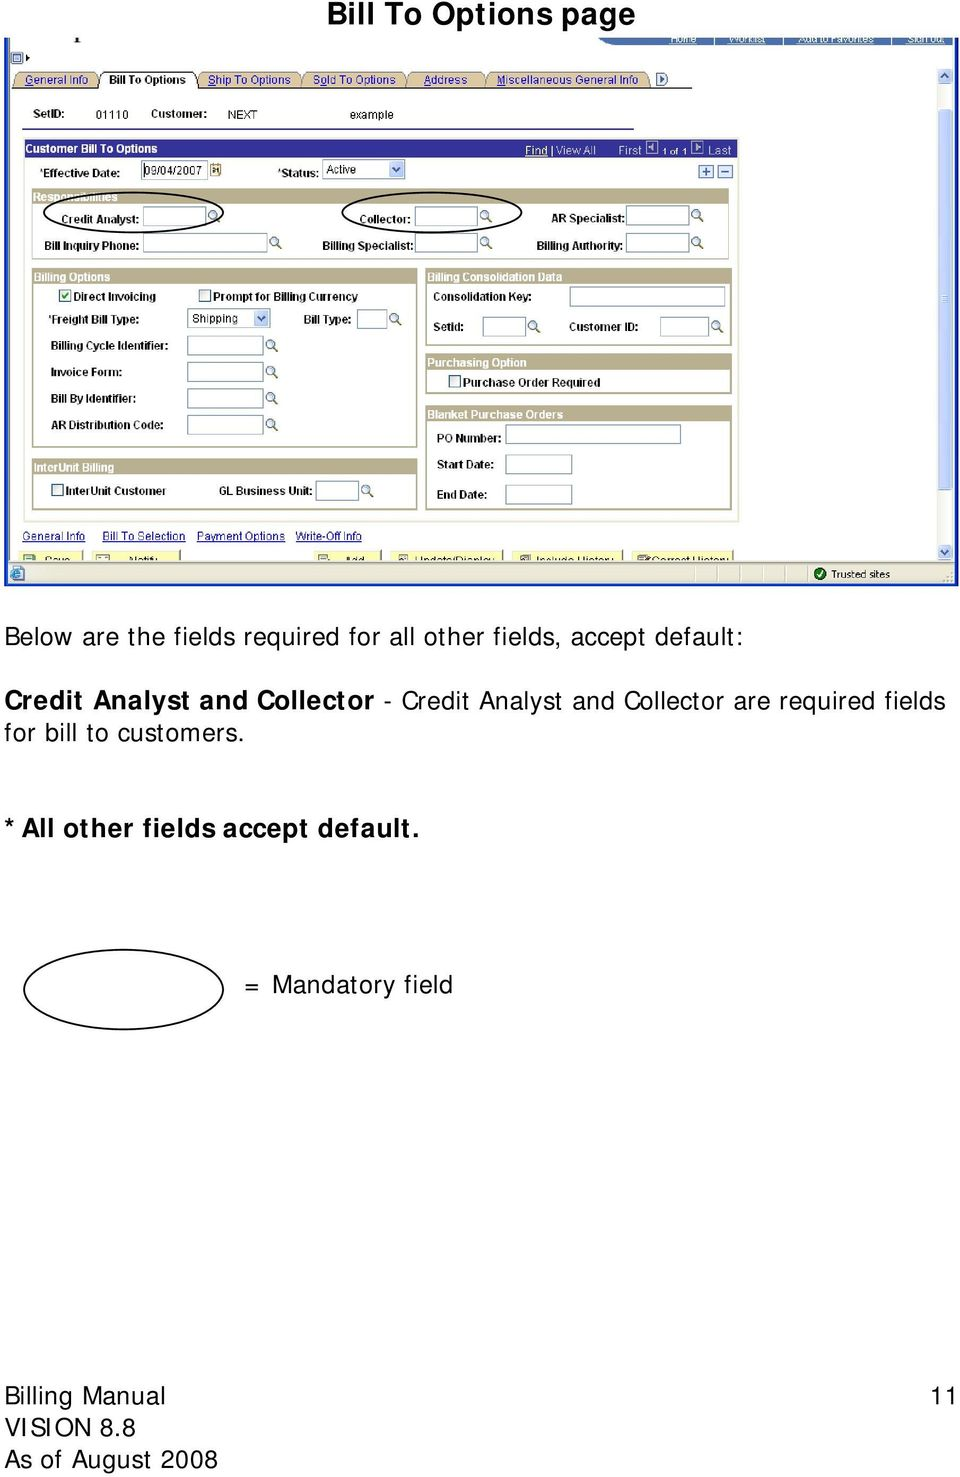 Credit Analyst and Collector are required fields for bill to